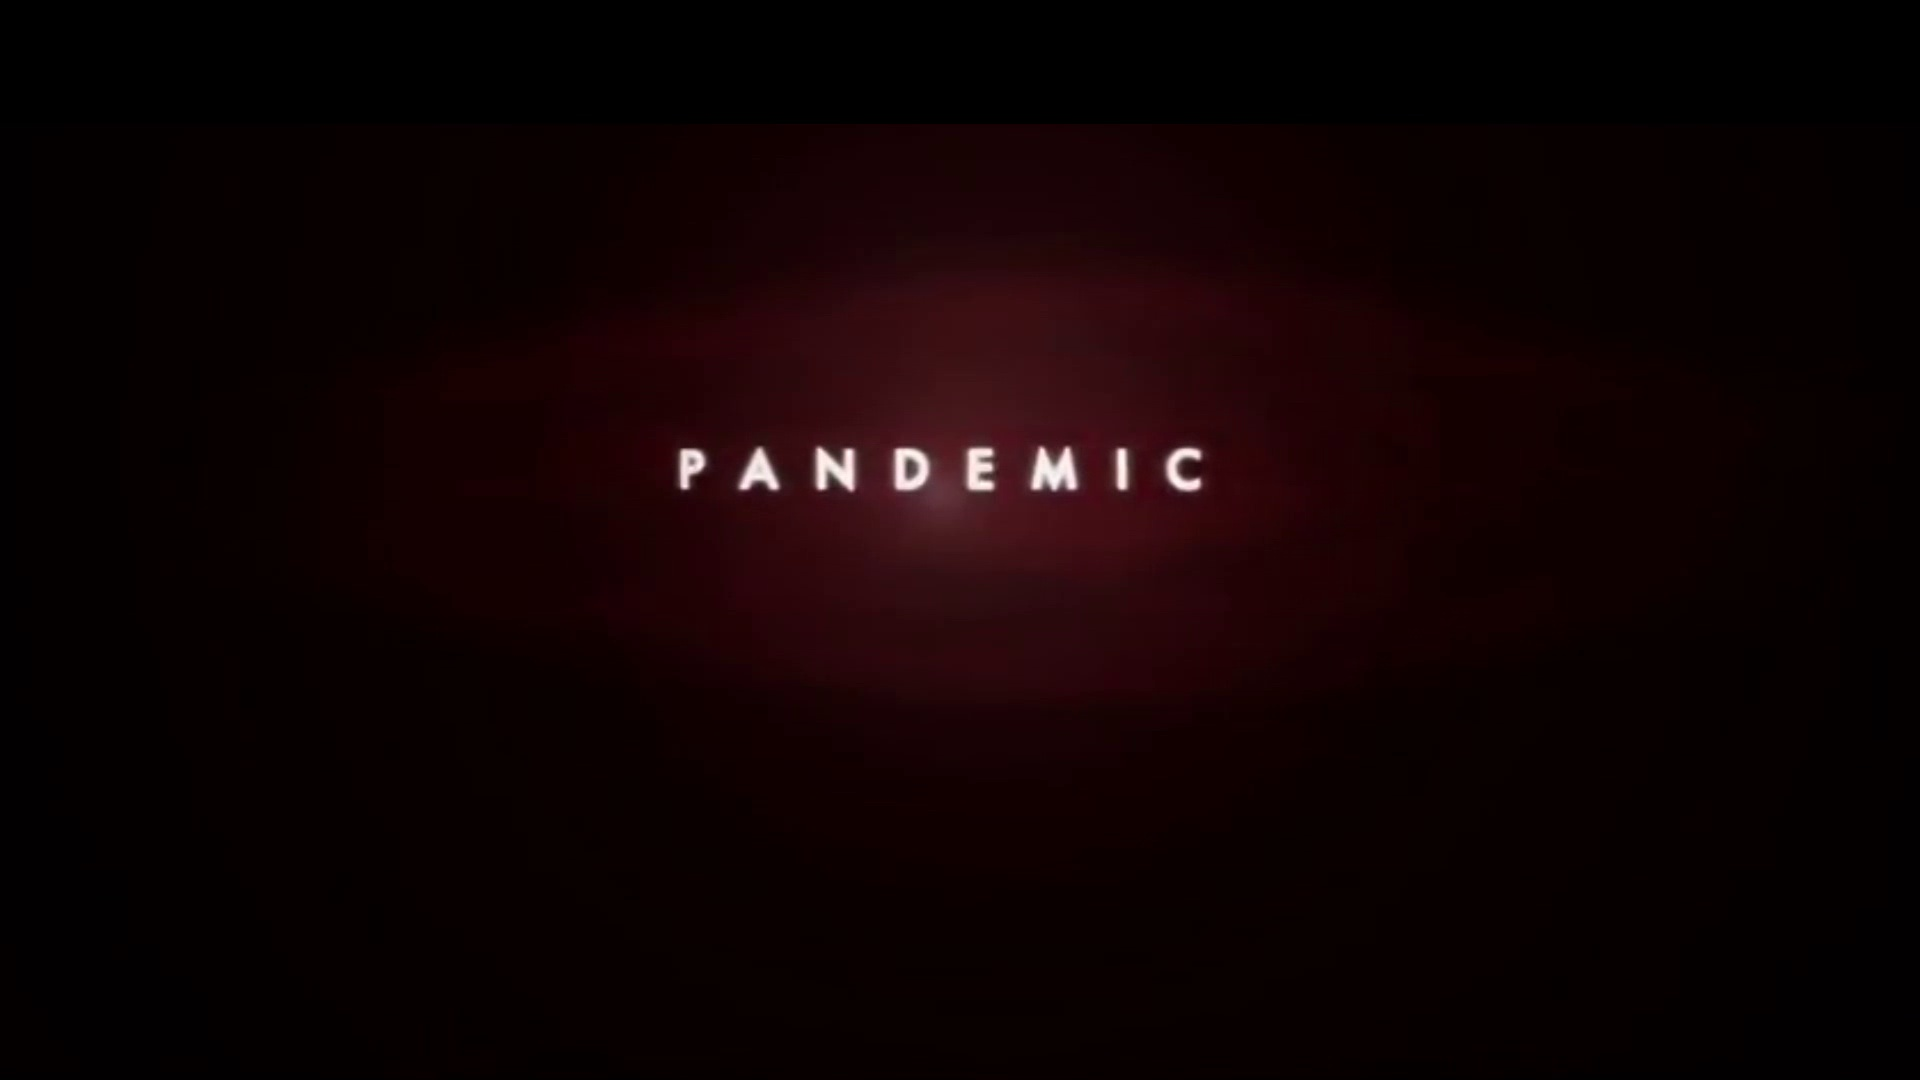 PANDEMIC (2015) Bande Annonce VF